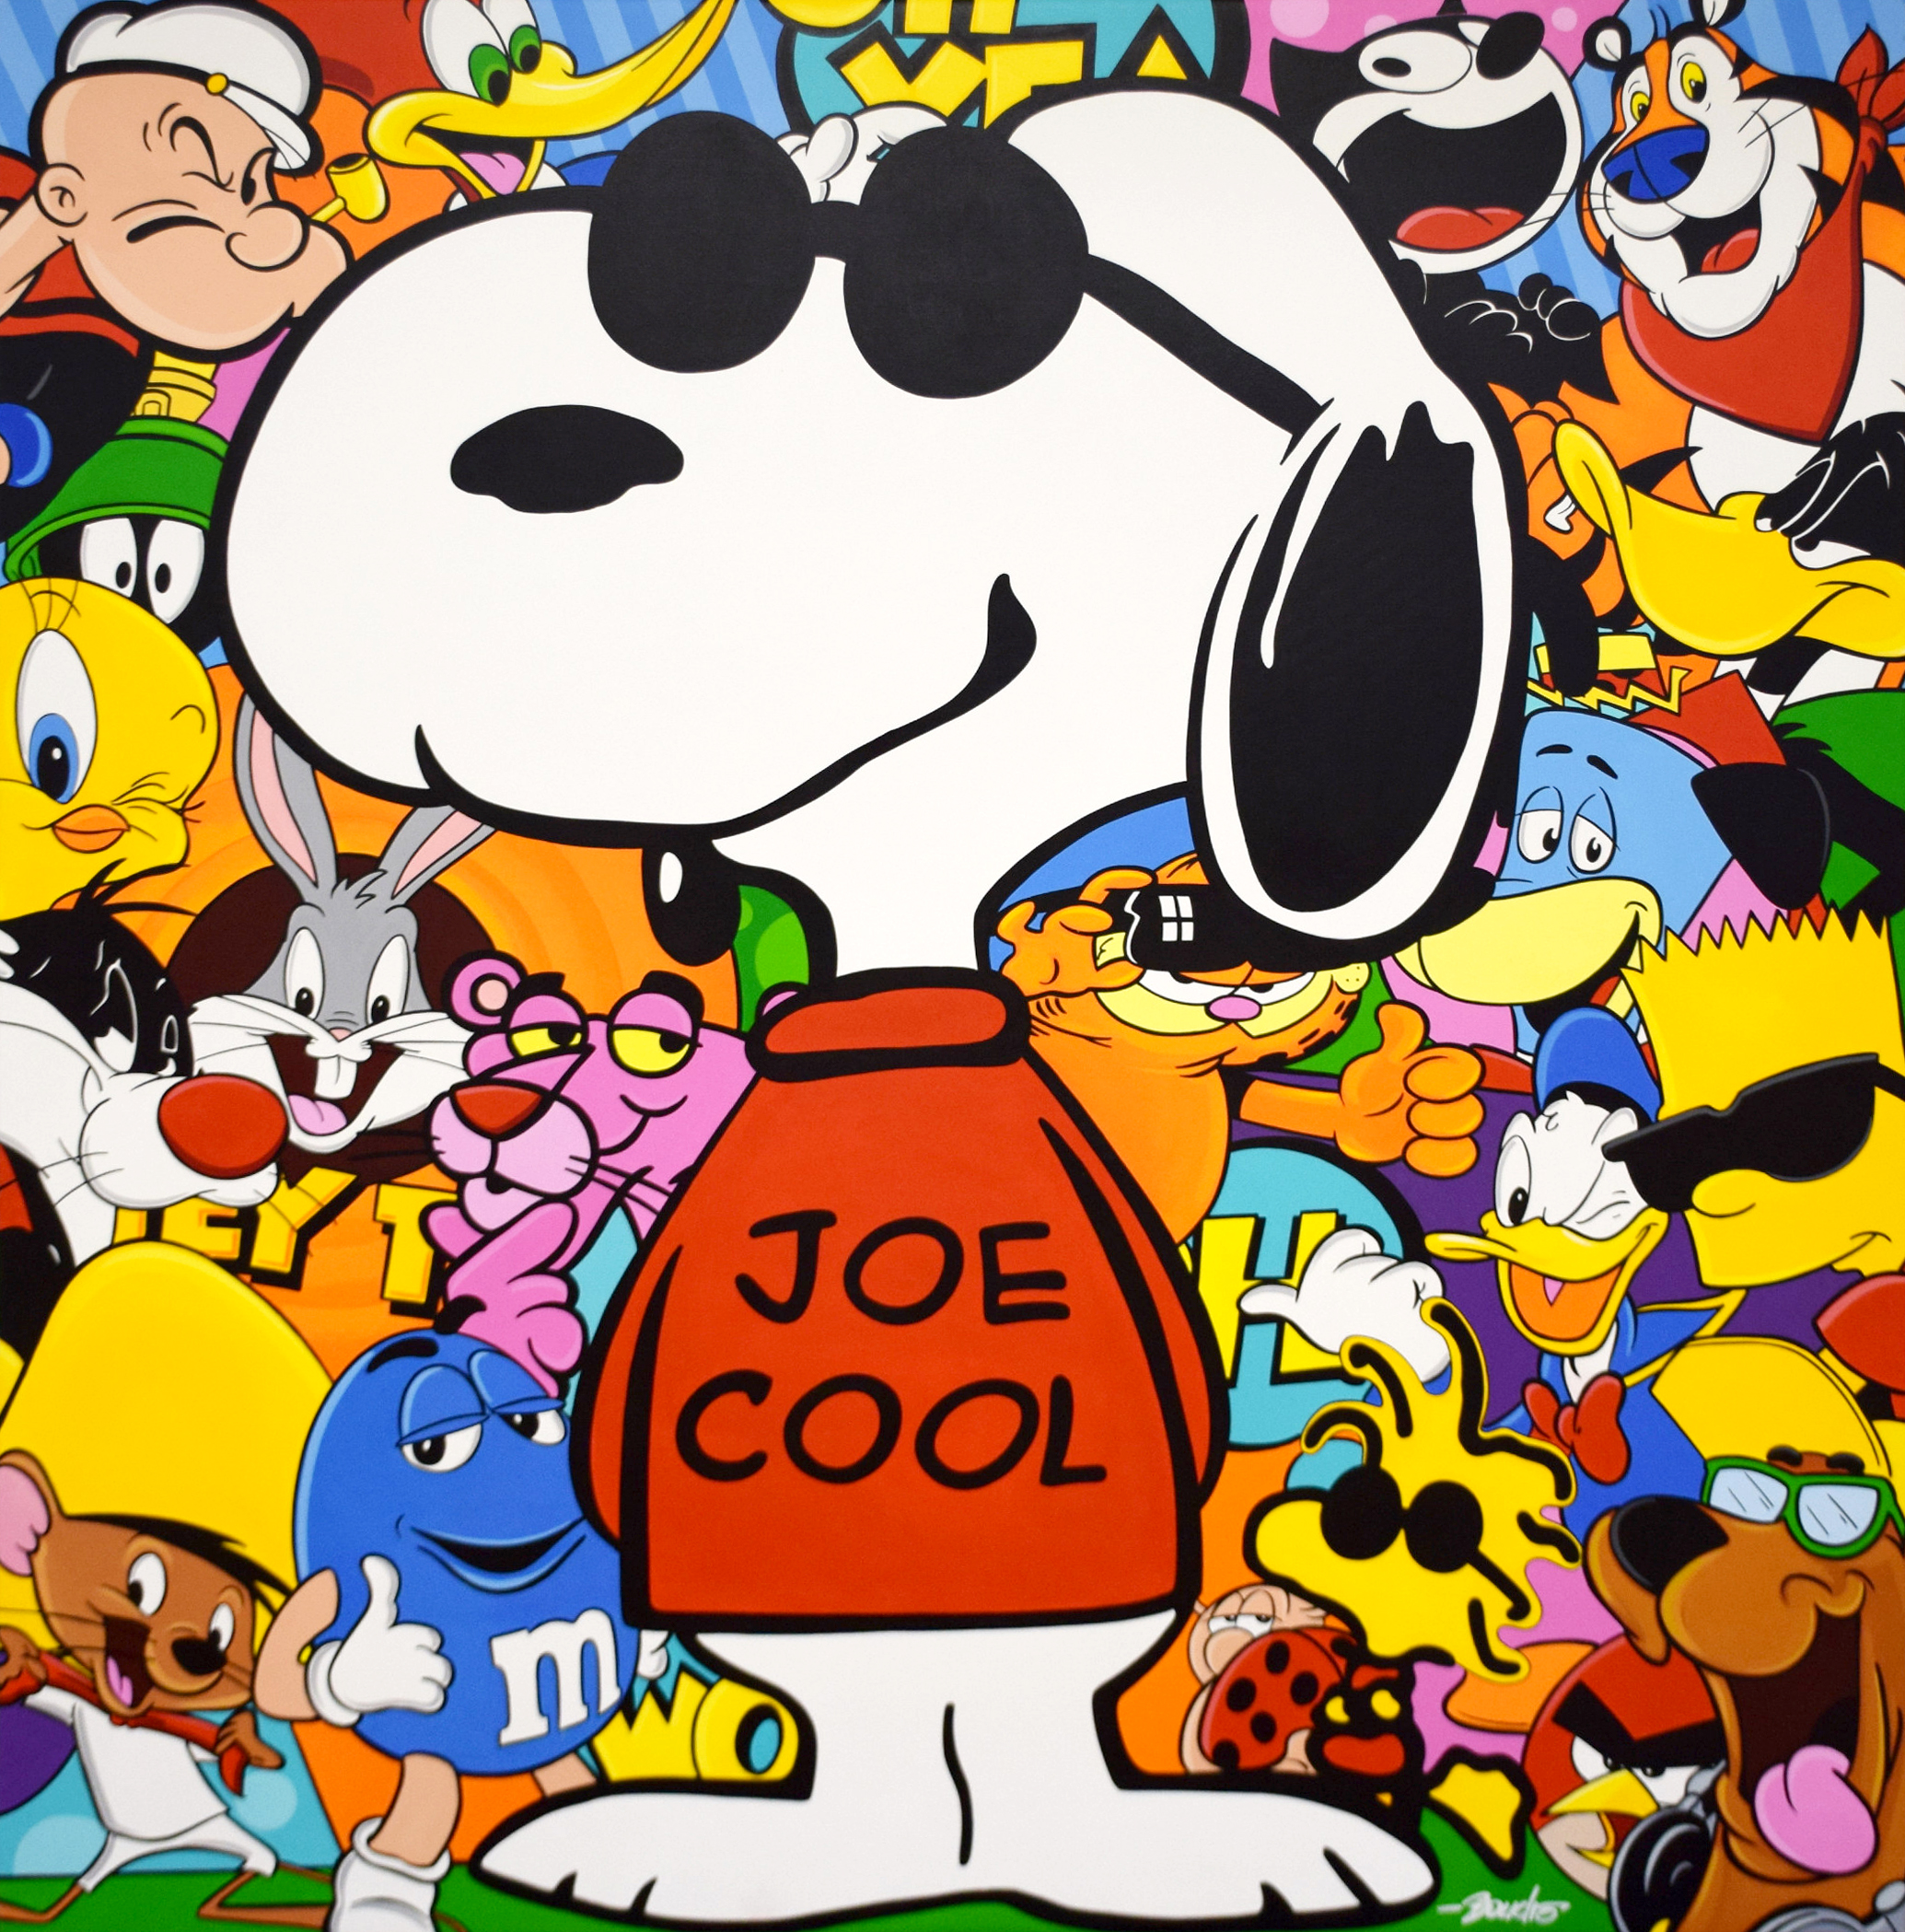 Guy Boudro - Joe Cool (the Coolest) , 9200-012-015